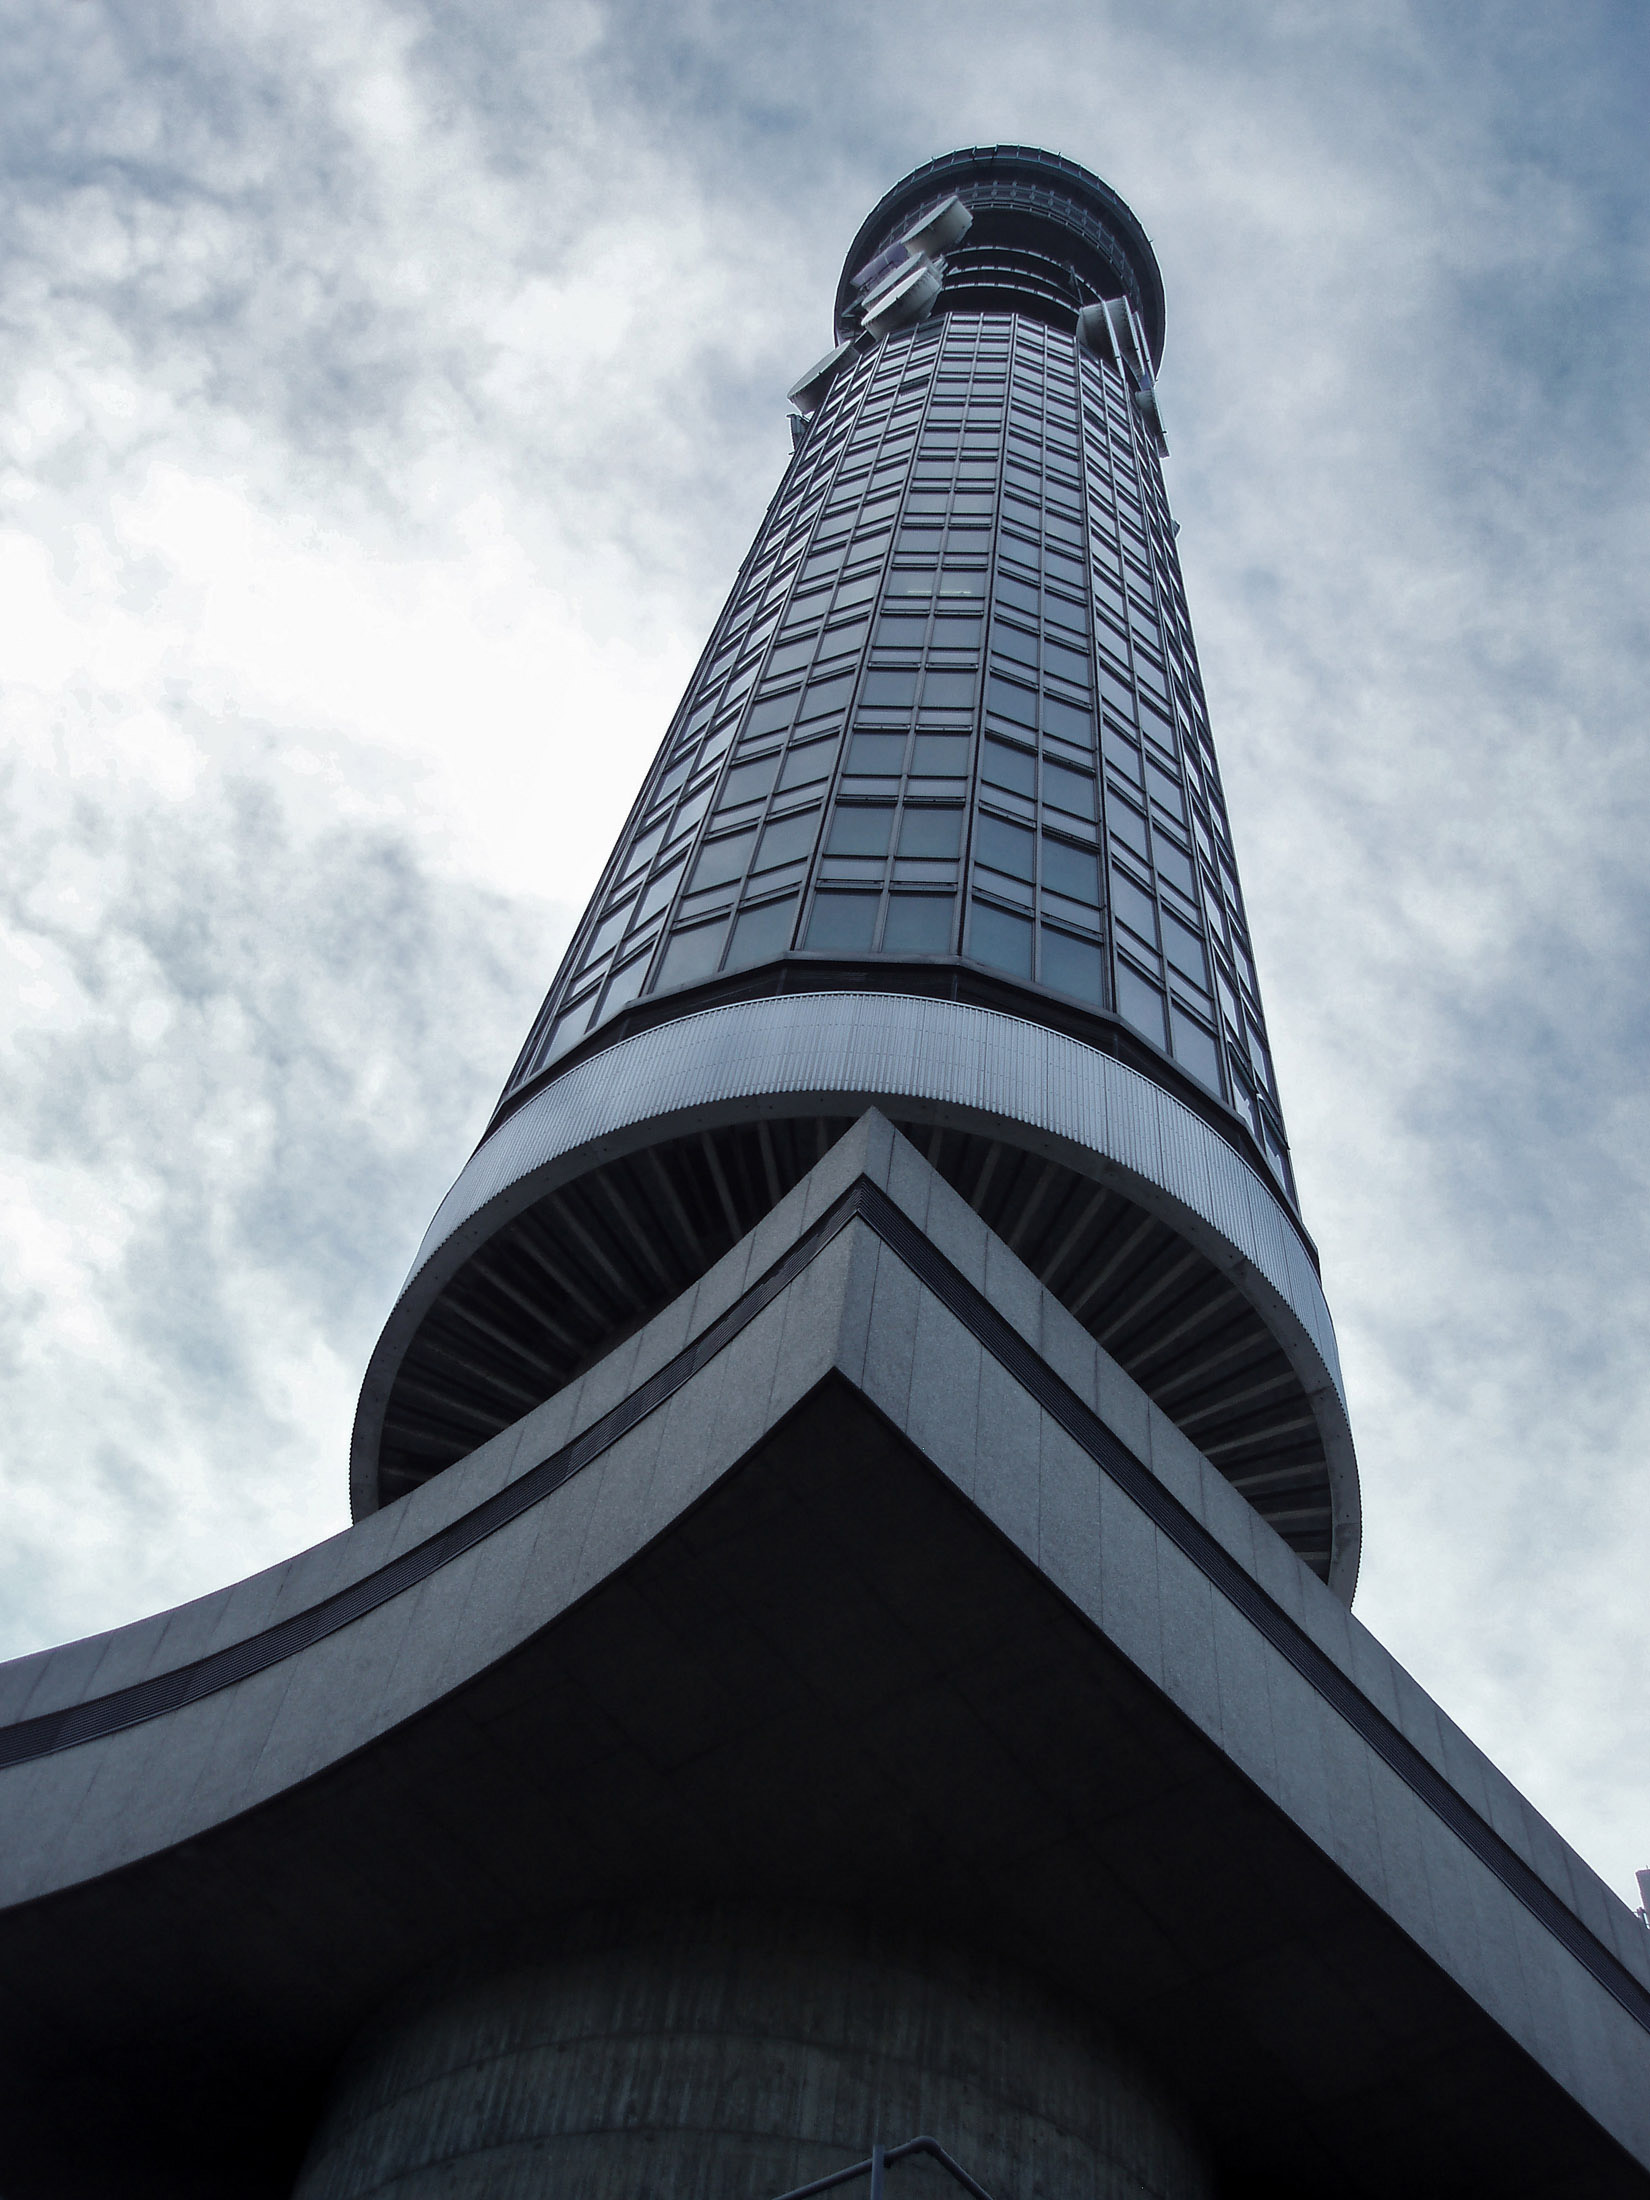 Famous Architecture: BT Tower in Fitzrovia, London. It has been previously known as the Post Office Tower, the London Telecom Tower and the British Telecom Tower.